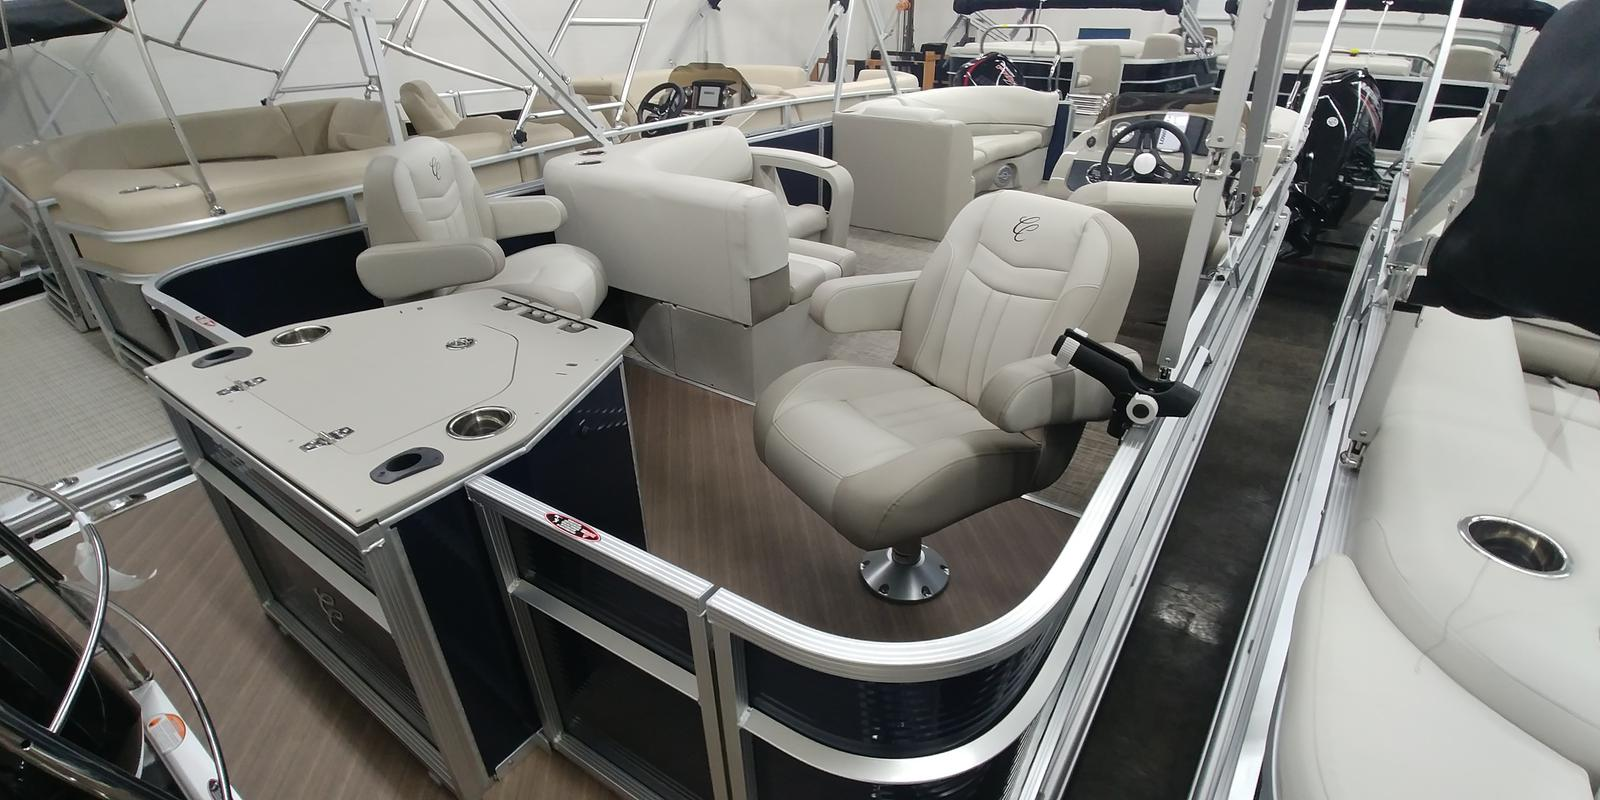 2019 Cypress Cay boat for sale, model of the boat is Seabreeze 232 FCT & Image # 3 of 4